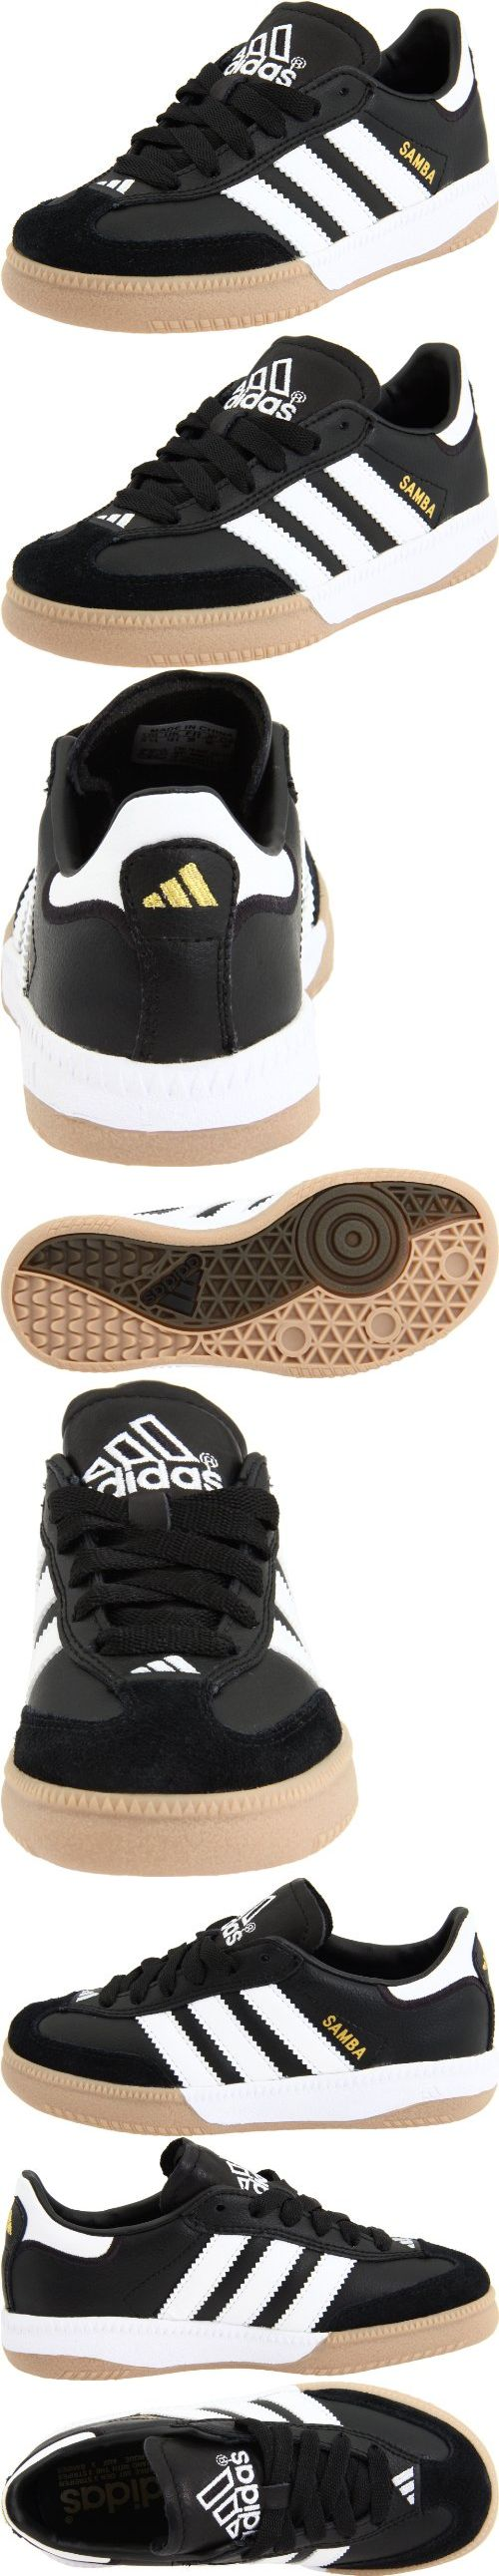 adidas Samba M Leather Soccer Shoe (Little Kid/Big Kid) - The adidas® Samba soccer shoe for kid's features a cupsole and gum rubber outsole, which can be worn to play indoor soccer or as a casual shoe. The arena leather upper and soft leather tongue allow f... - Sneakers - Apparel -